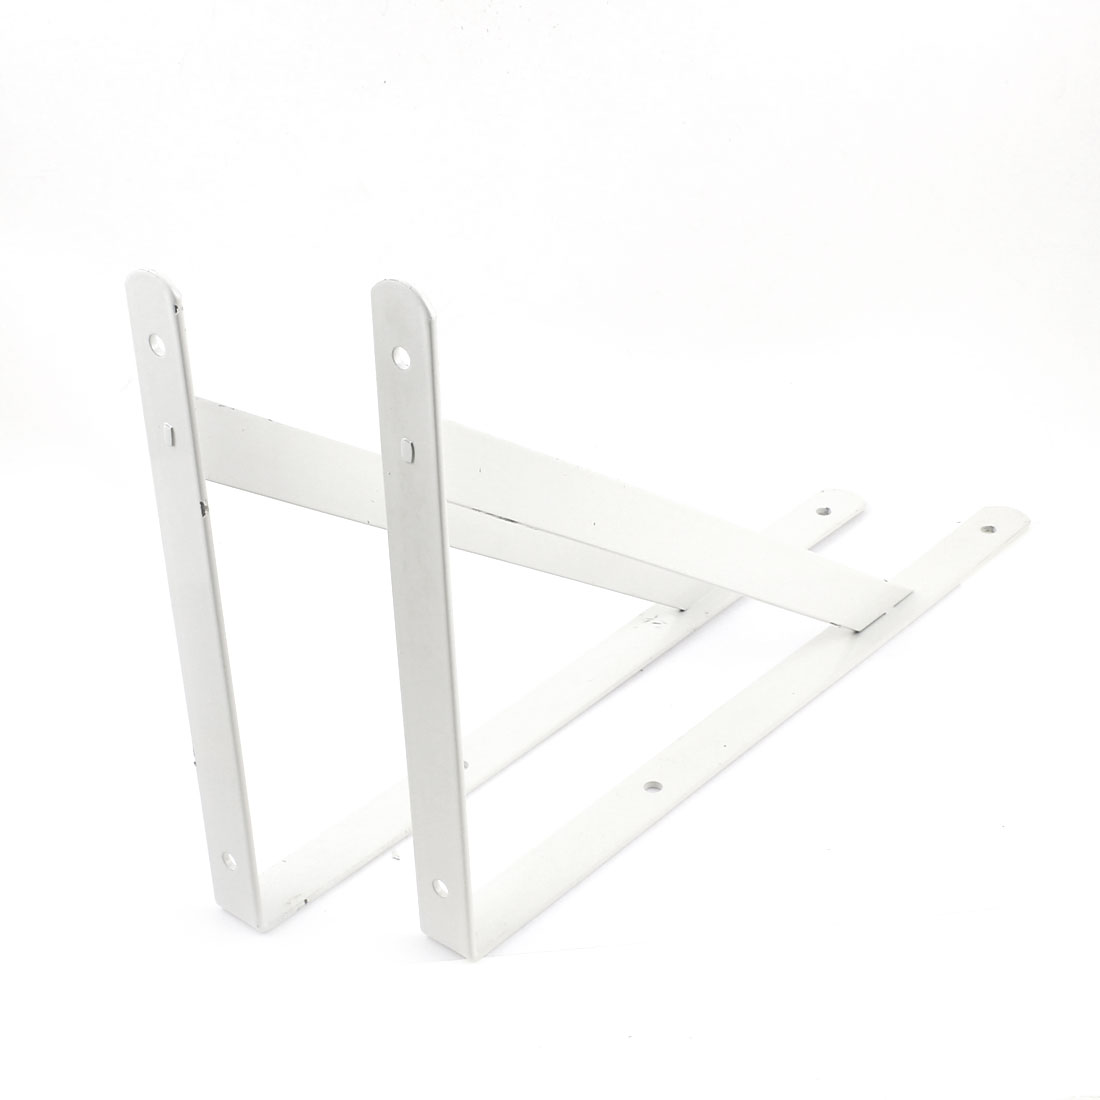 "15"" x 10"" White L Shaped Book Goods Holder Shelf Bracket Support 2 Pcs"